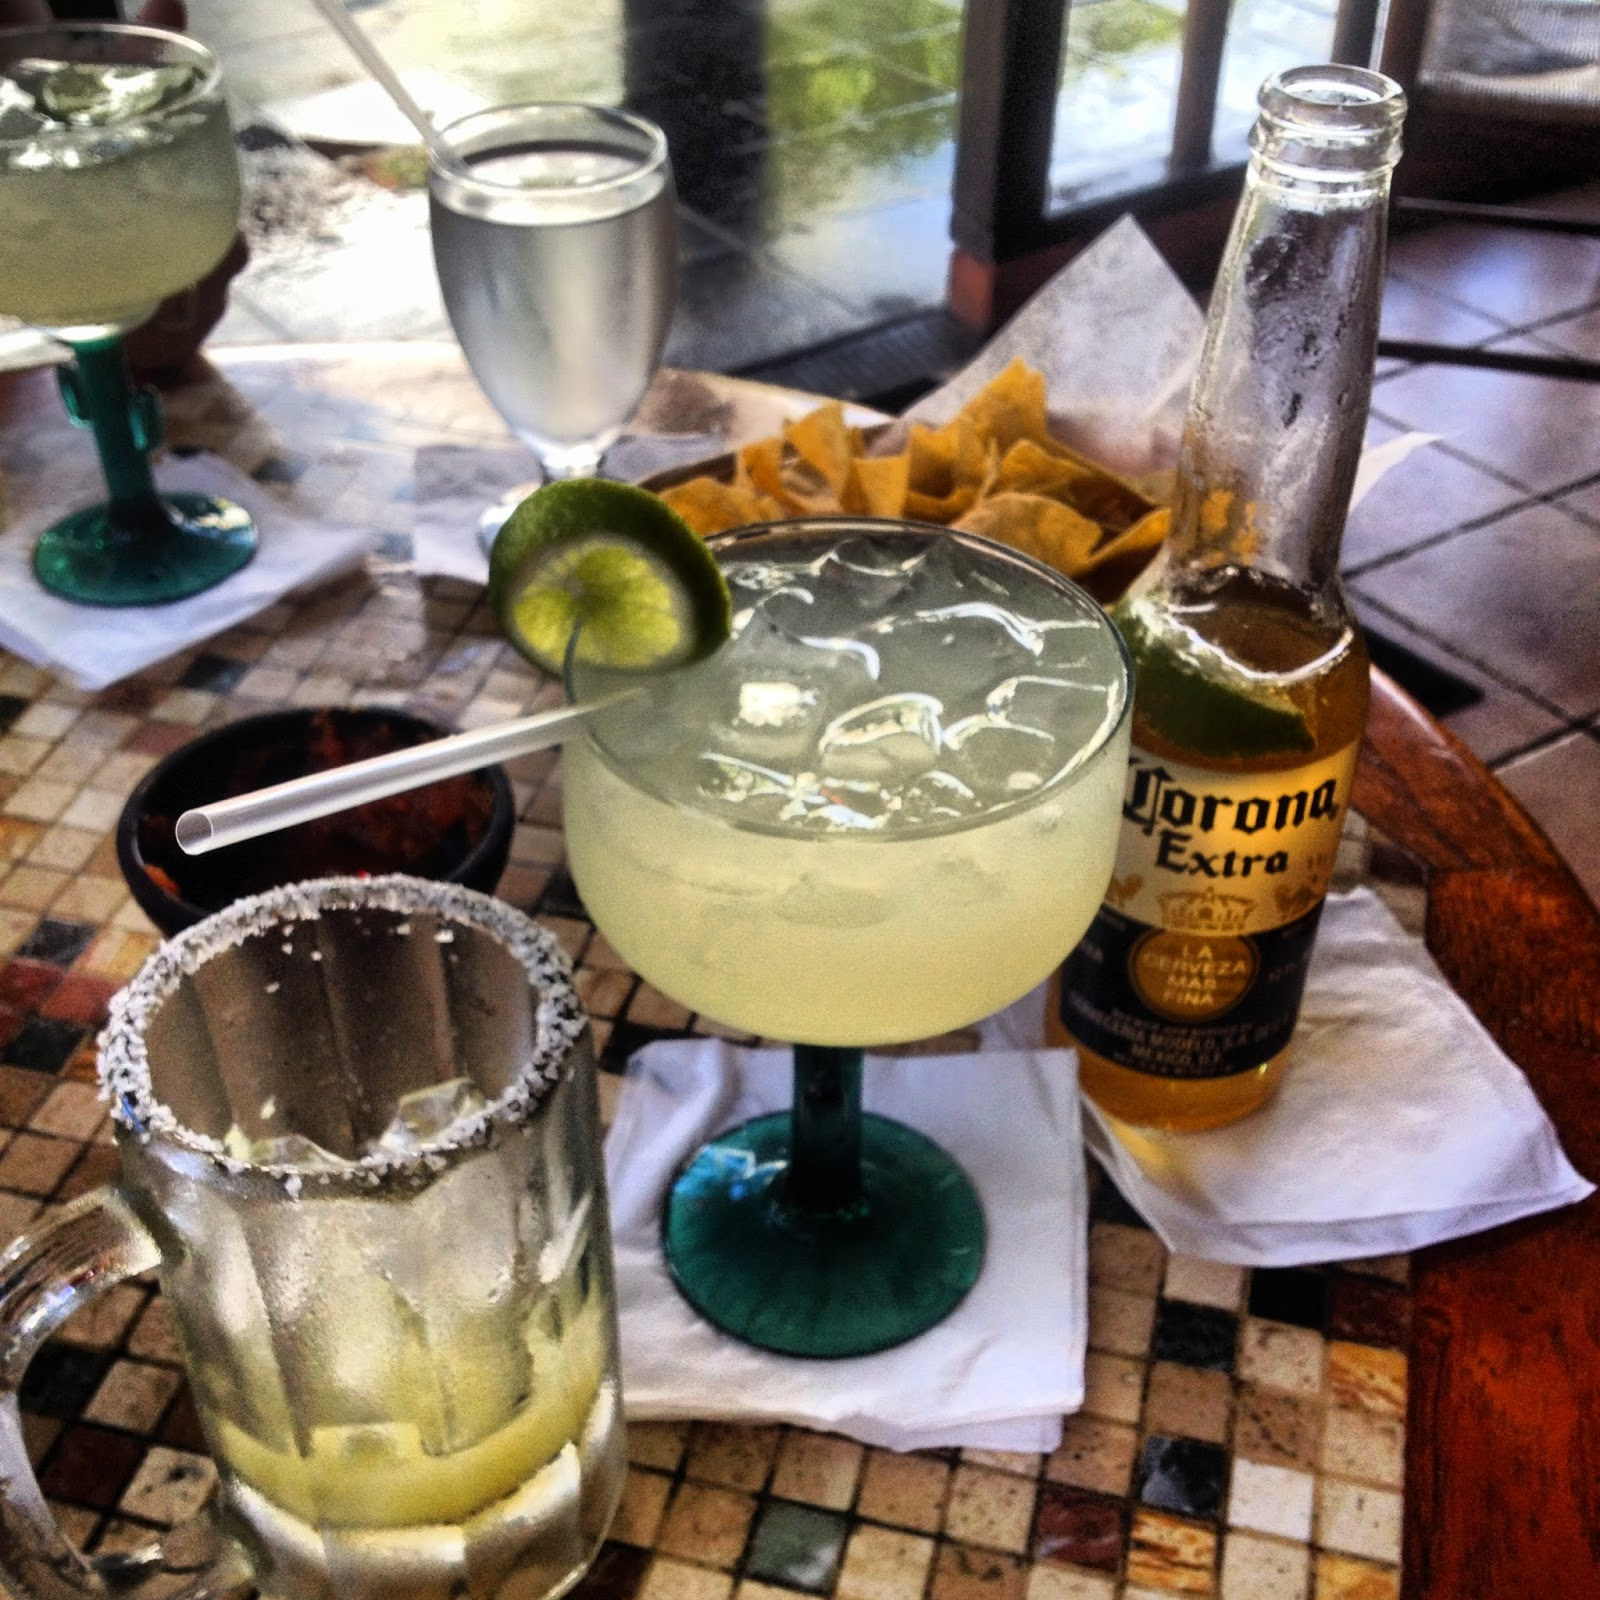 Margaritas and Coronas